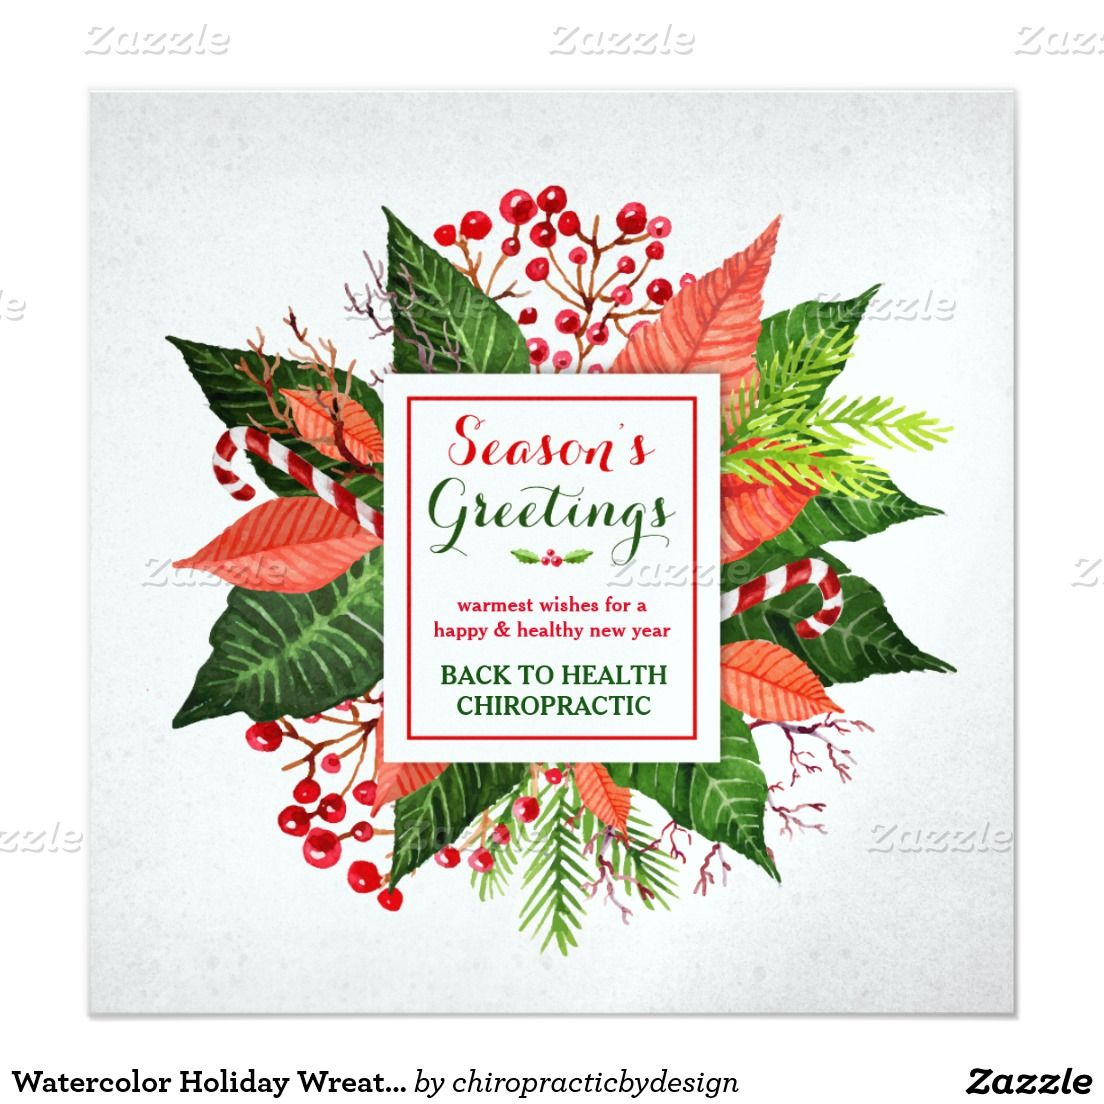 Watercolor Holiday Wreath Corporate Christmas Card